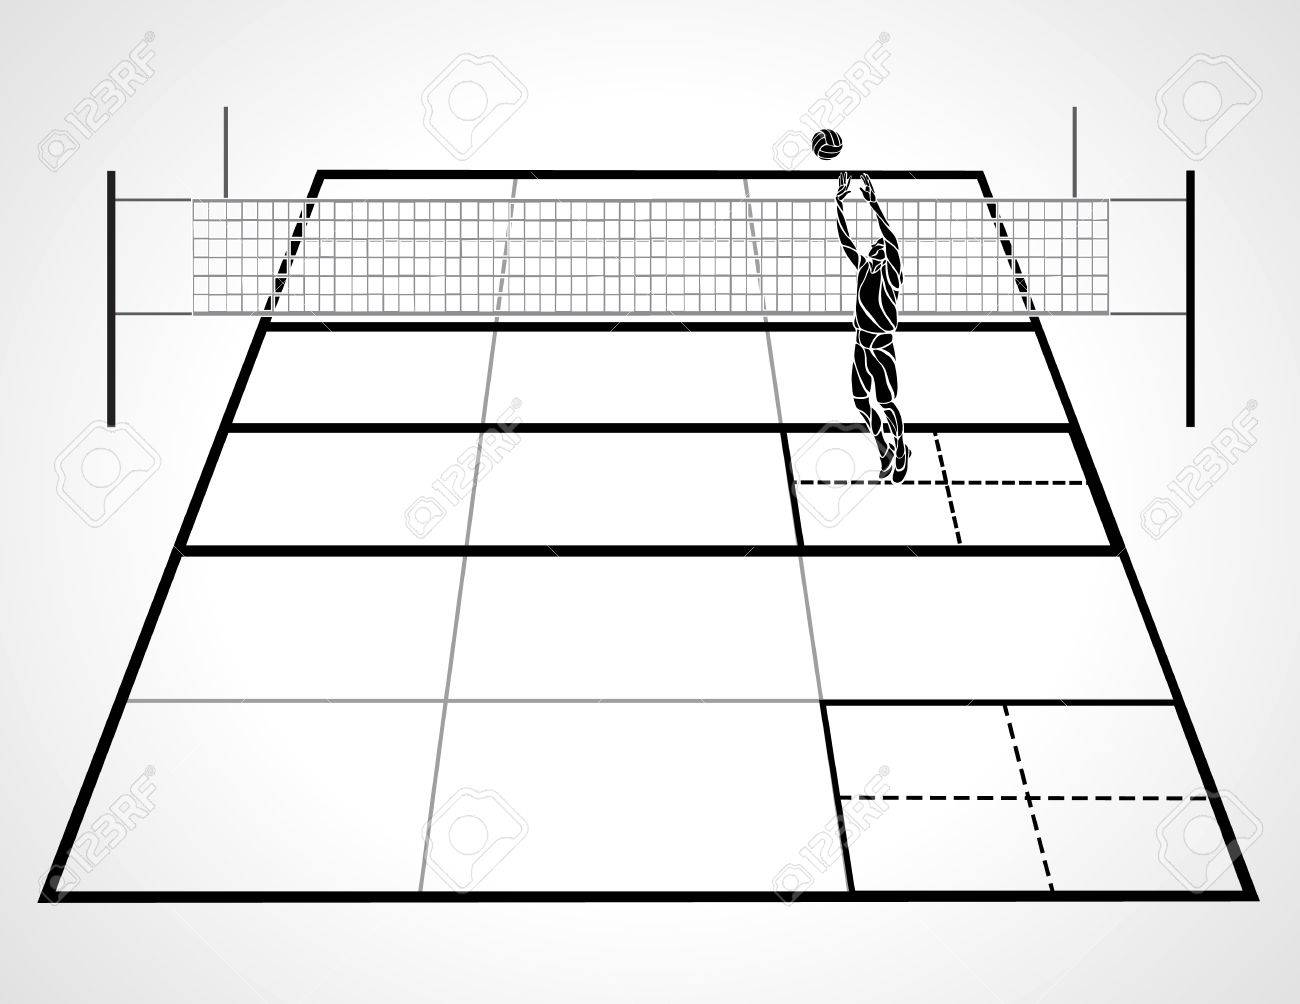 Volleyball court with perspective, setter player and ball.